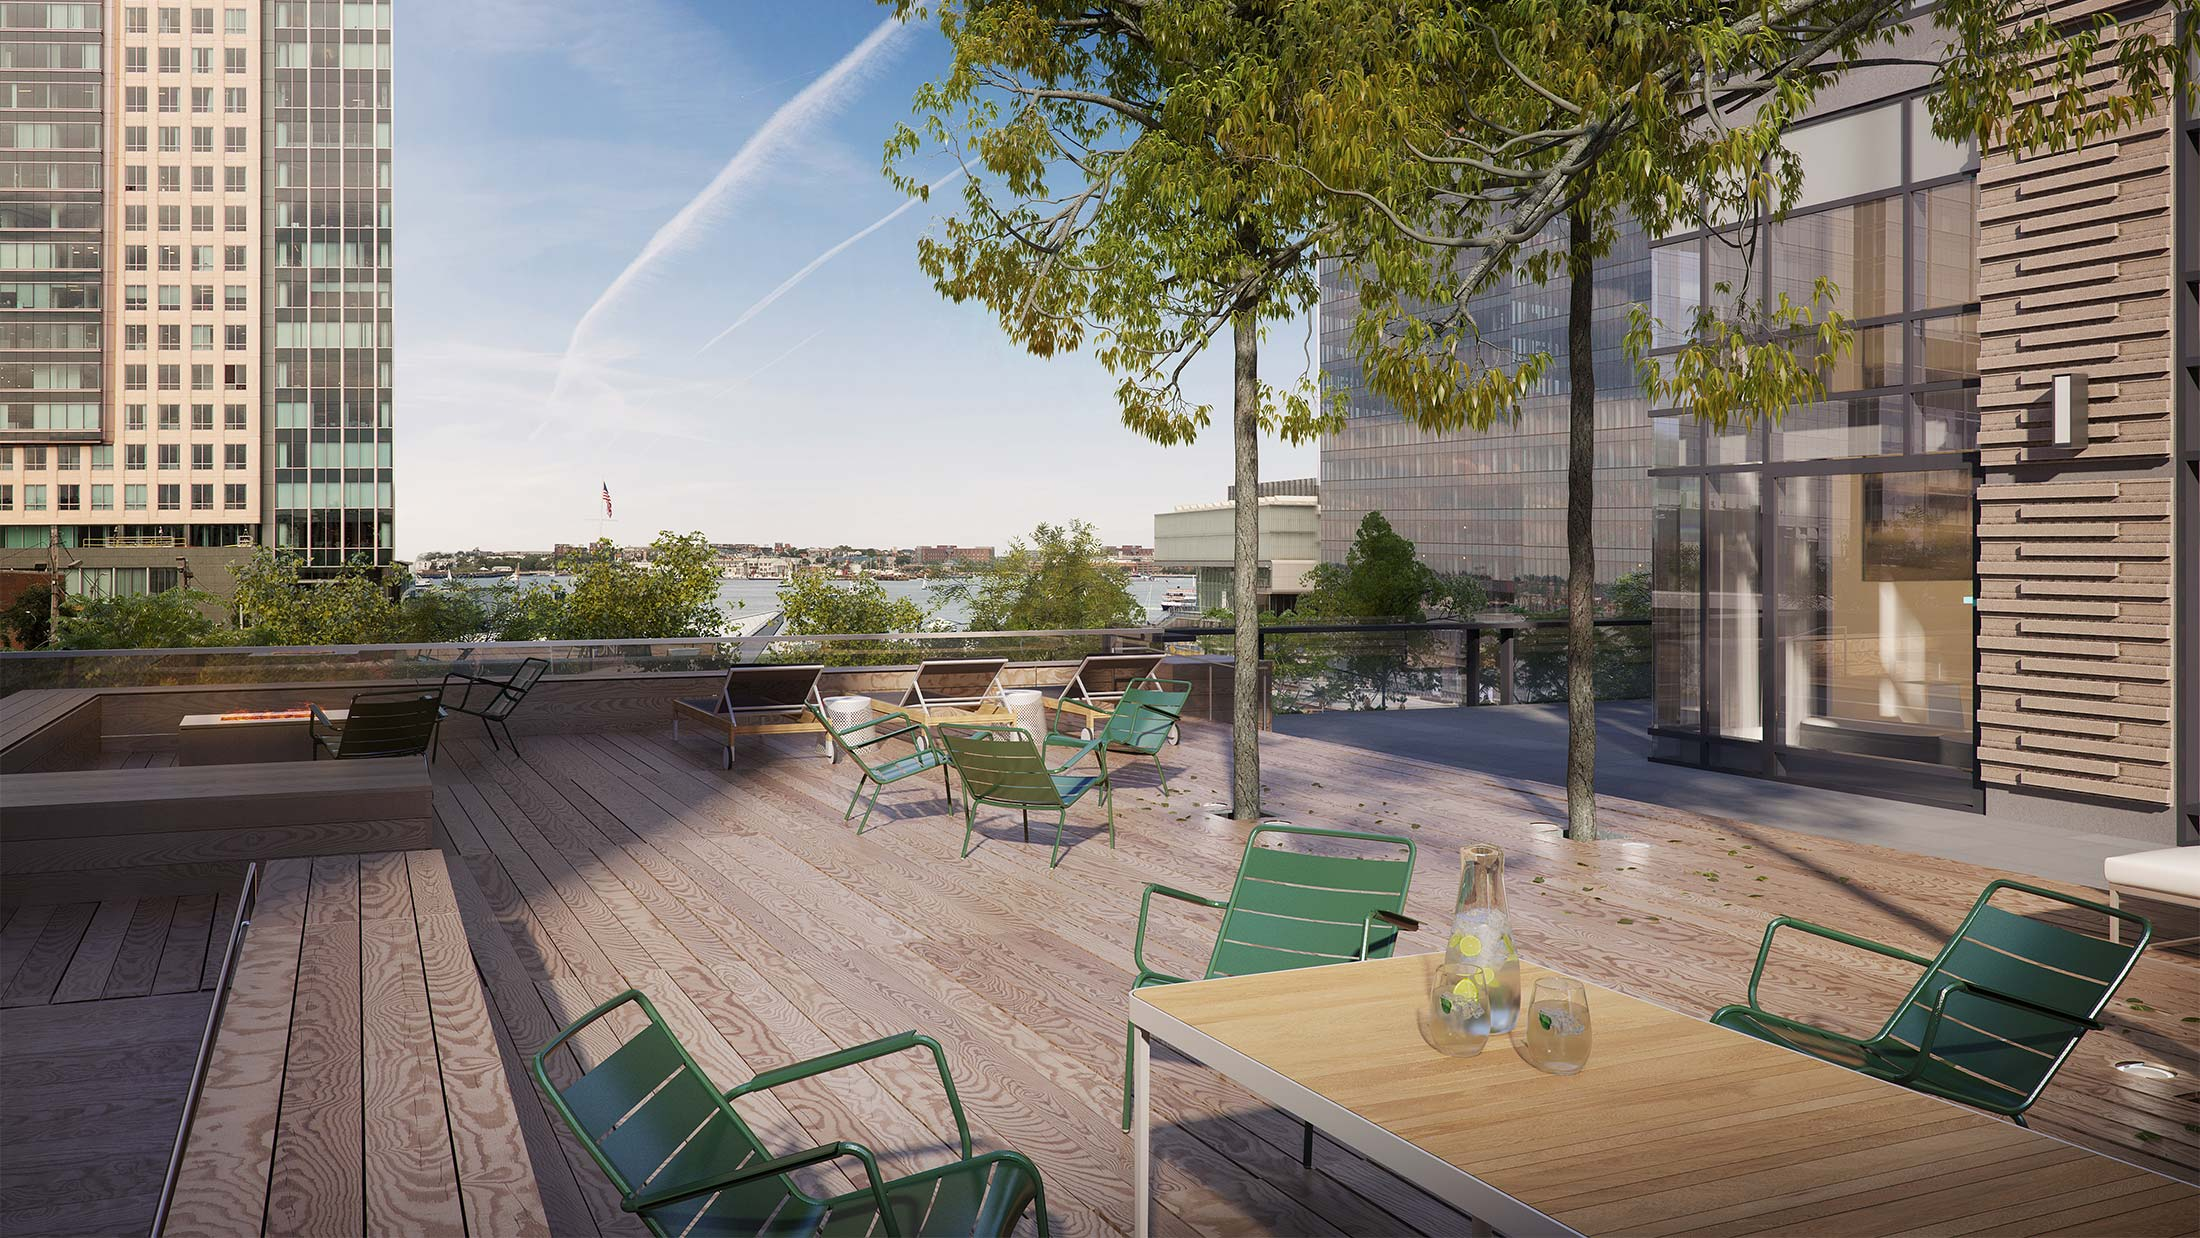 Architectural Rendering of the terrace of the Watermark Seaport project located in Boston, Massachusetts